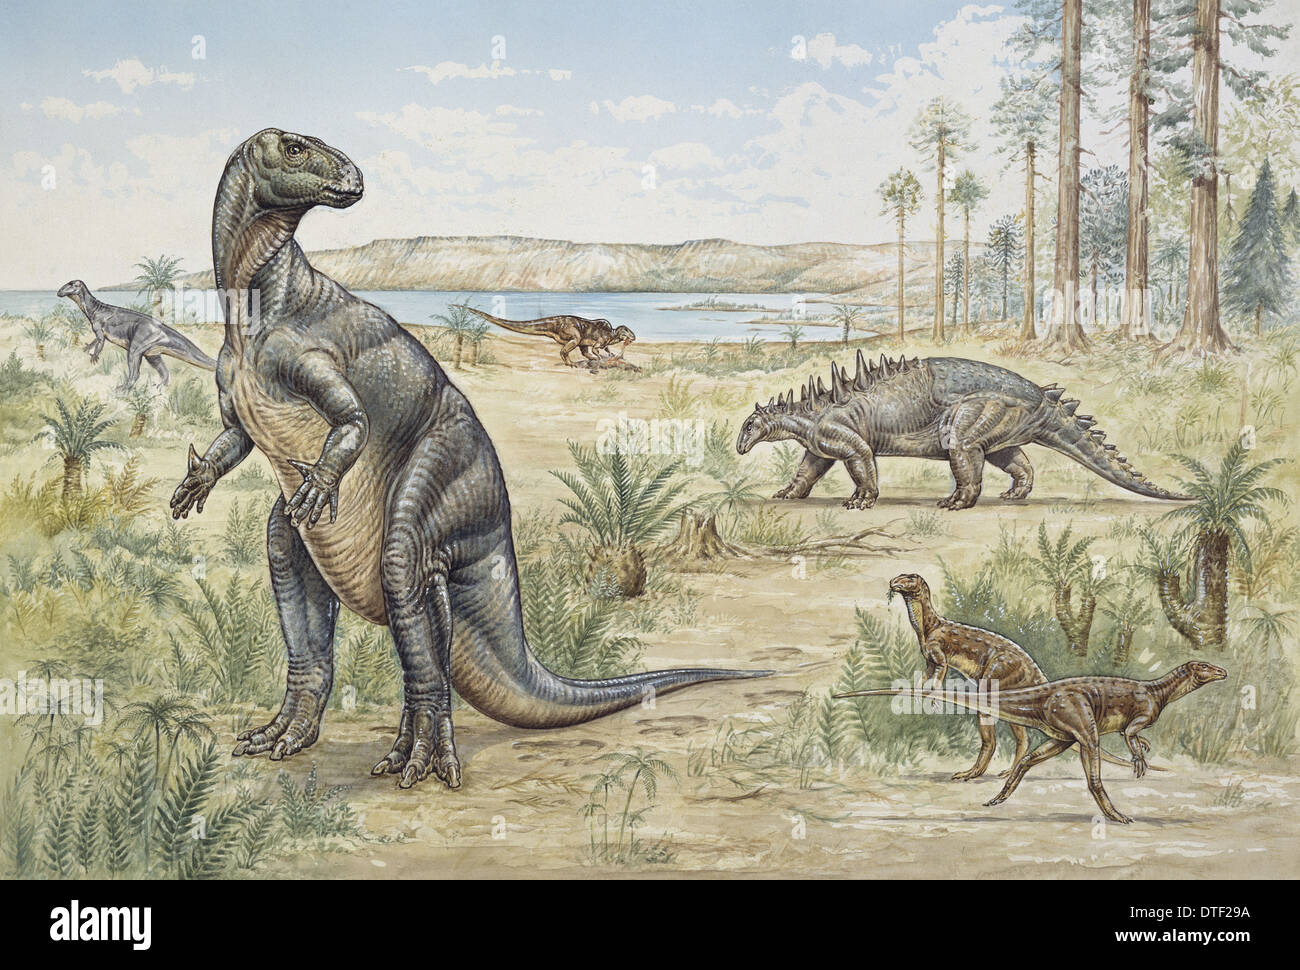 Lower Cretaceous dinosaurs discovered in England - Stock Image